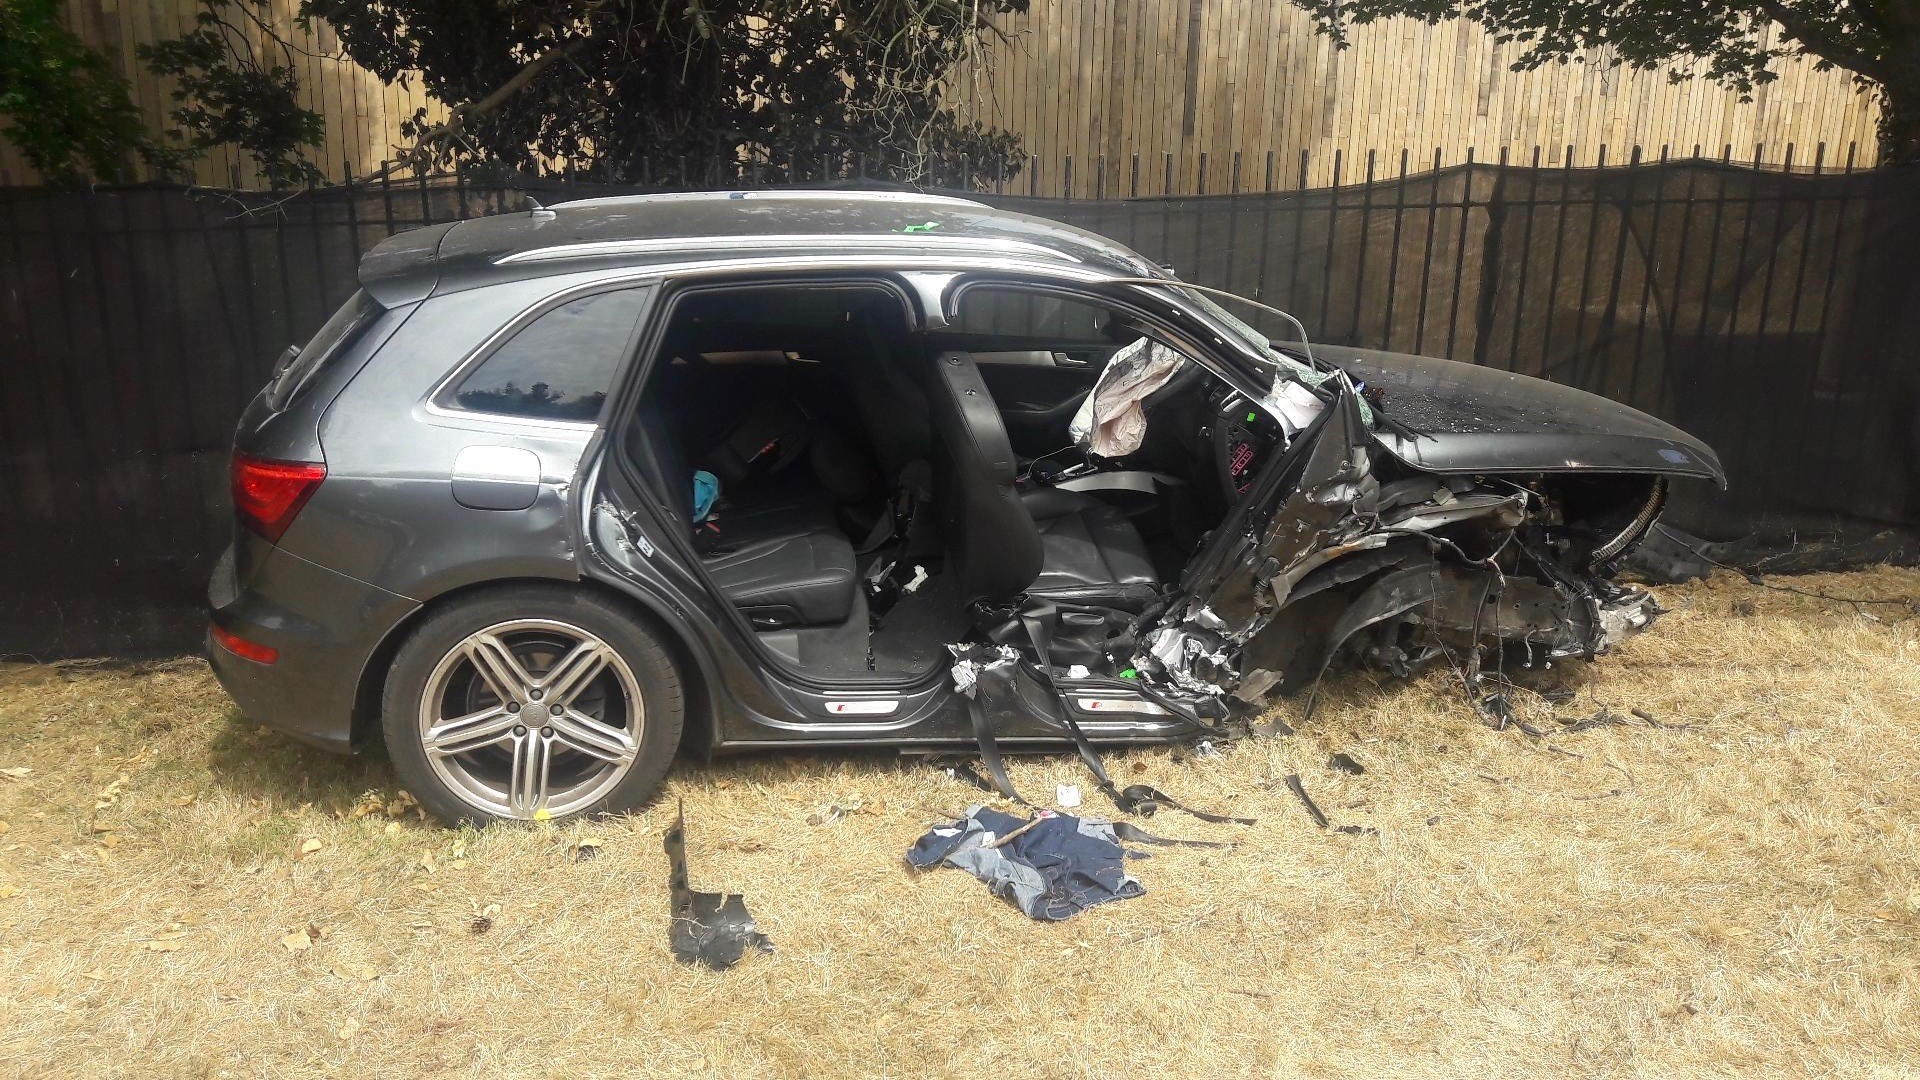 Emily Pringle's car after the collision